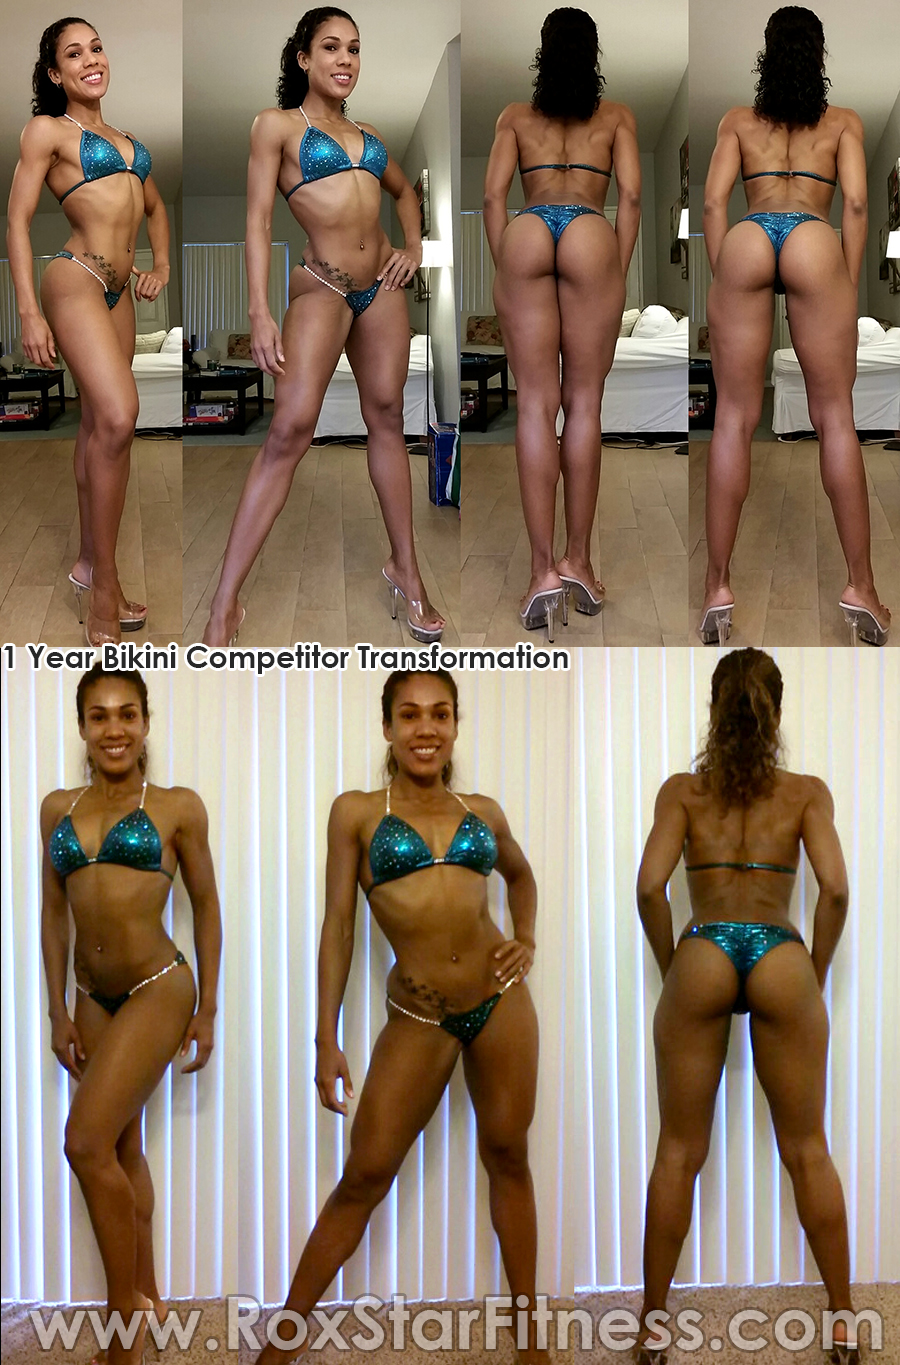 Client Transformation In Progress Npc Bikini Competitor Connie Braaten 2 Weeks Out From 2014